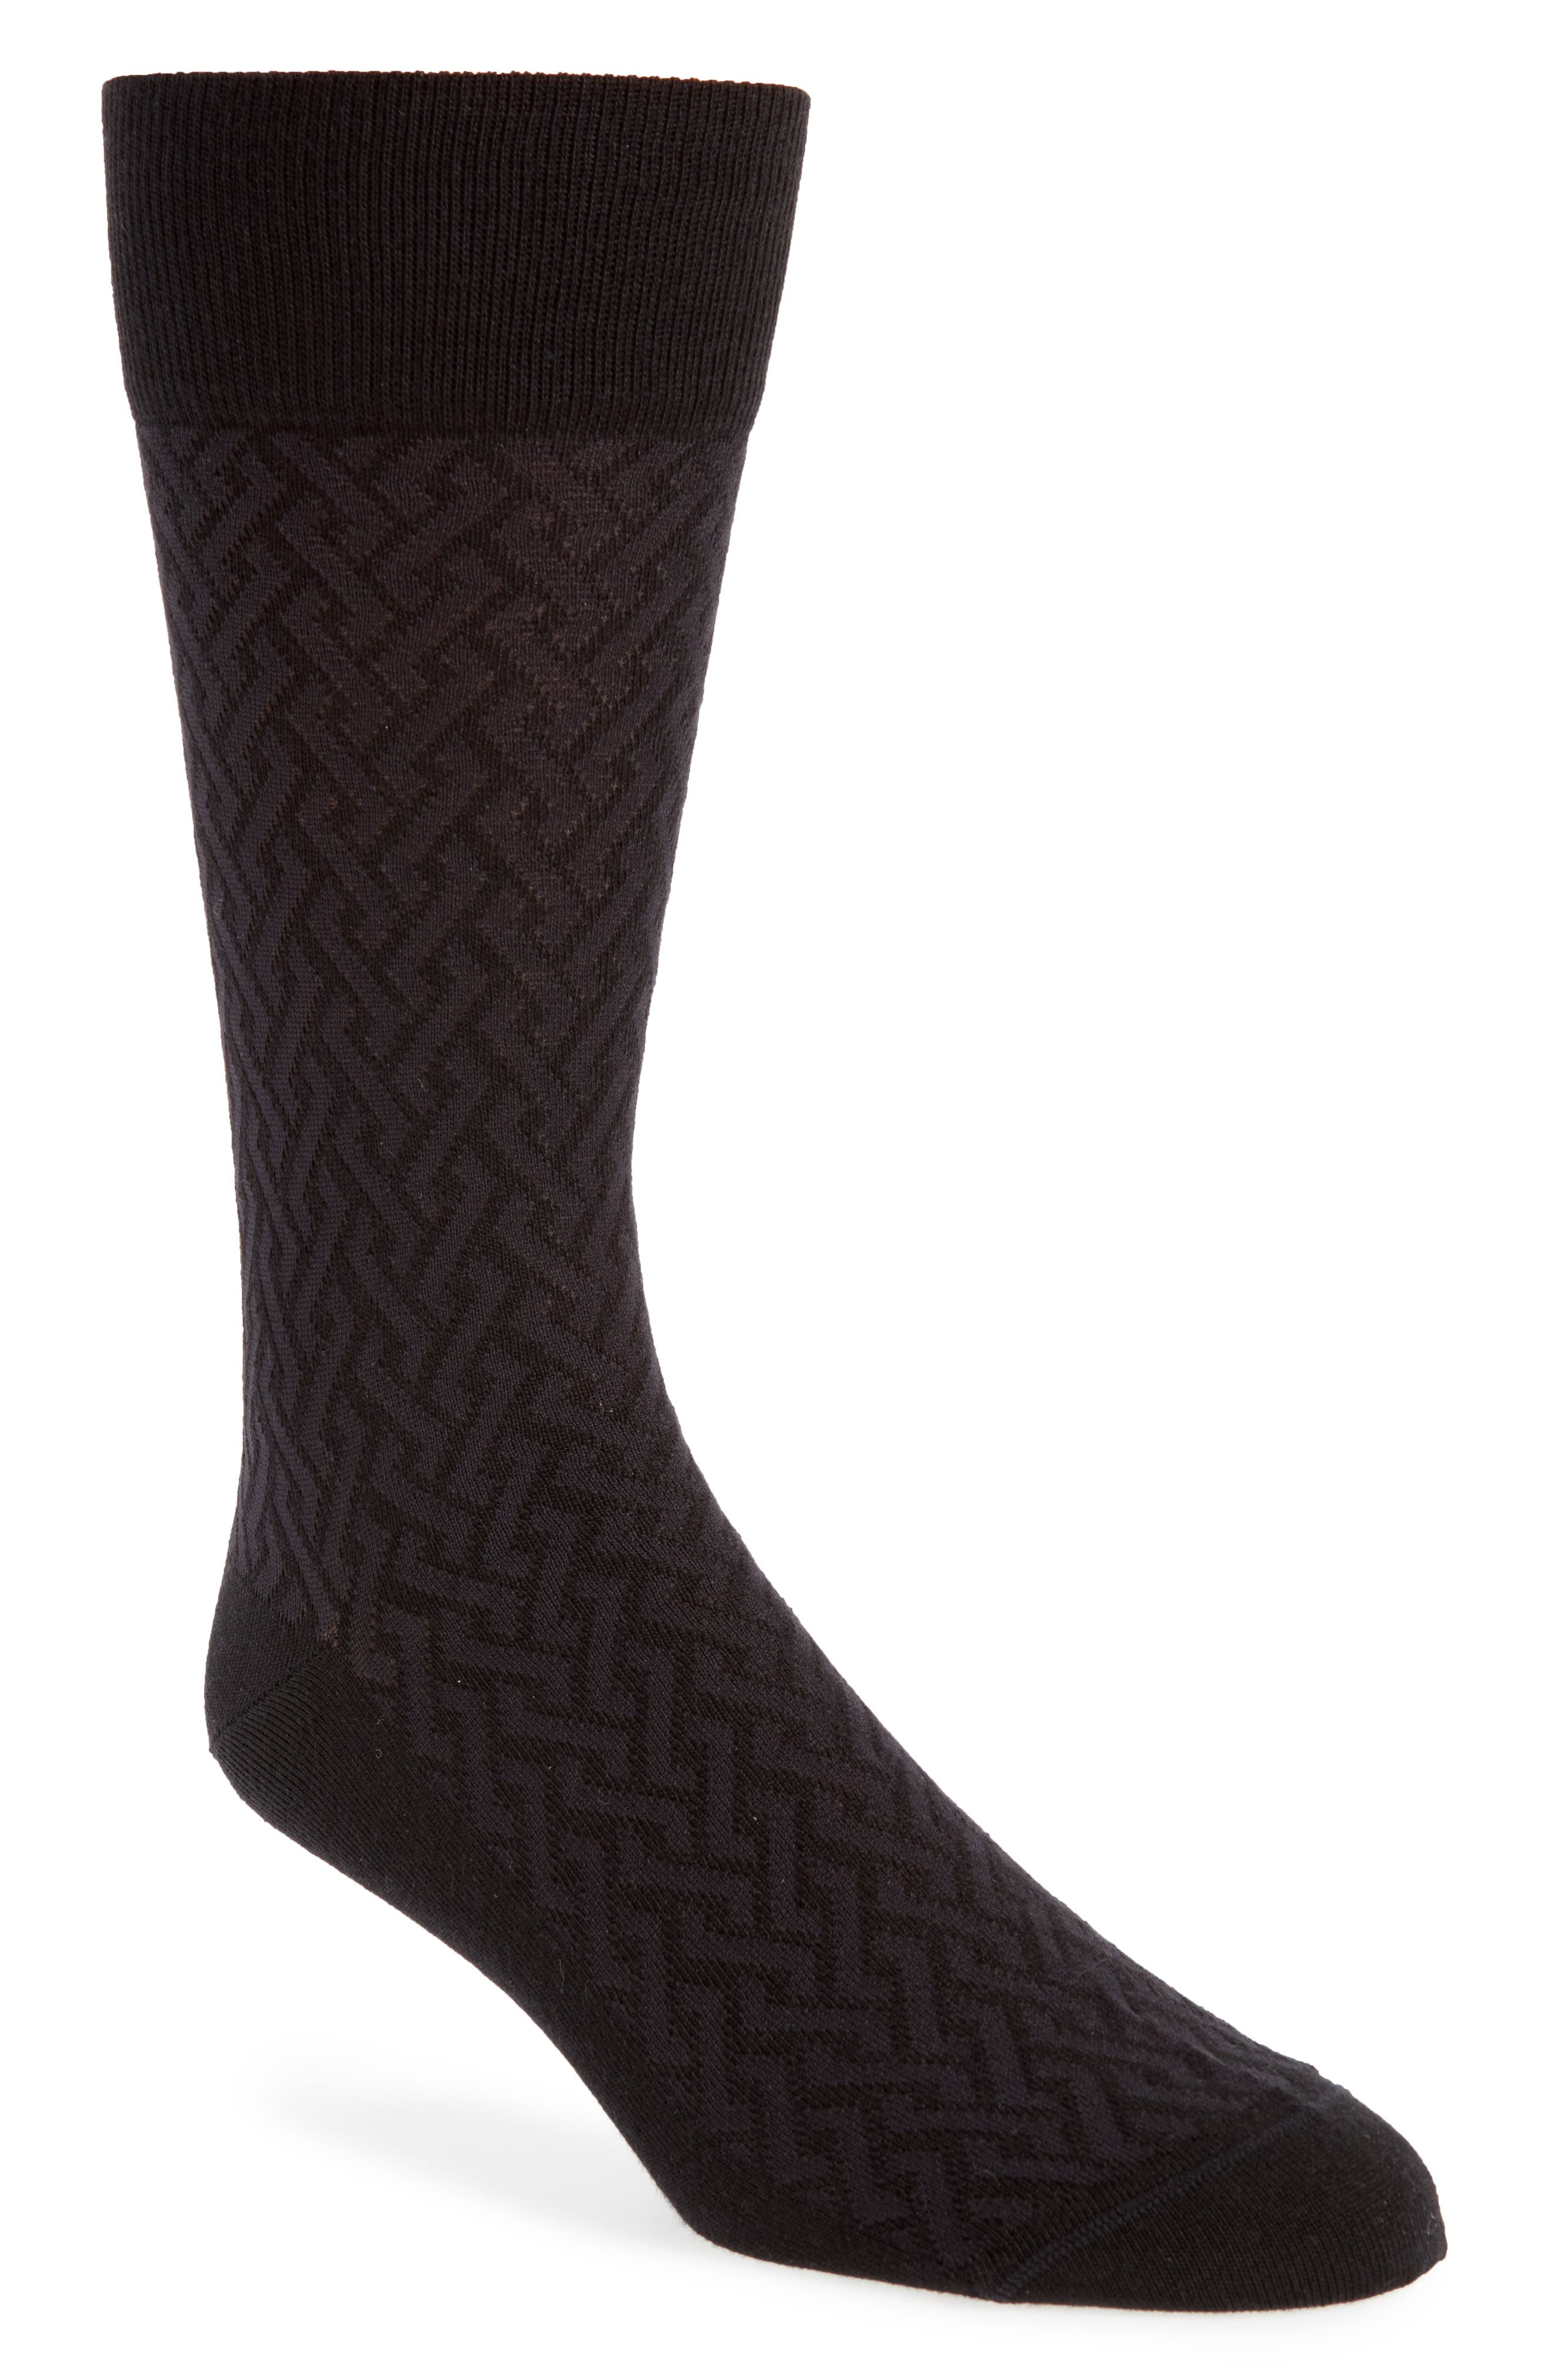 Intertwined Lines Socks,                             Main thumbnail 1, color,                             BLACK